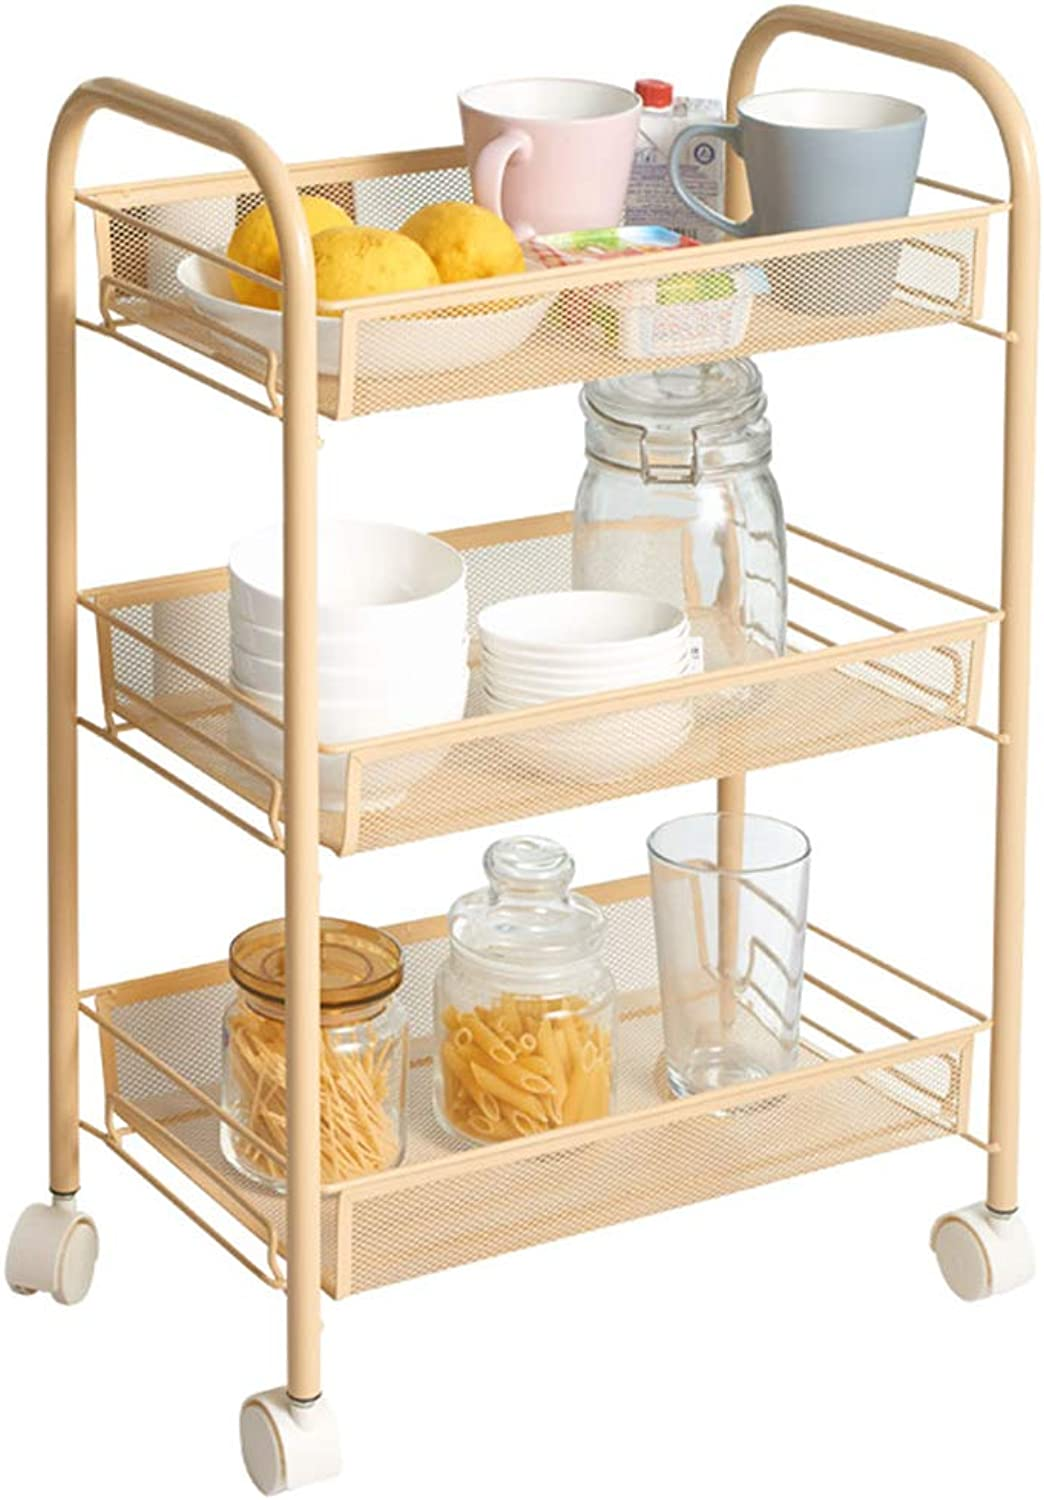 3-Layer Caster Kitchen Rack Move Trolley Living Room Bedroom Storage Rack Coffee color Serving Carts